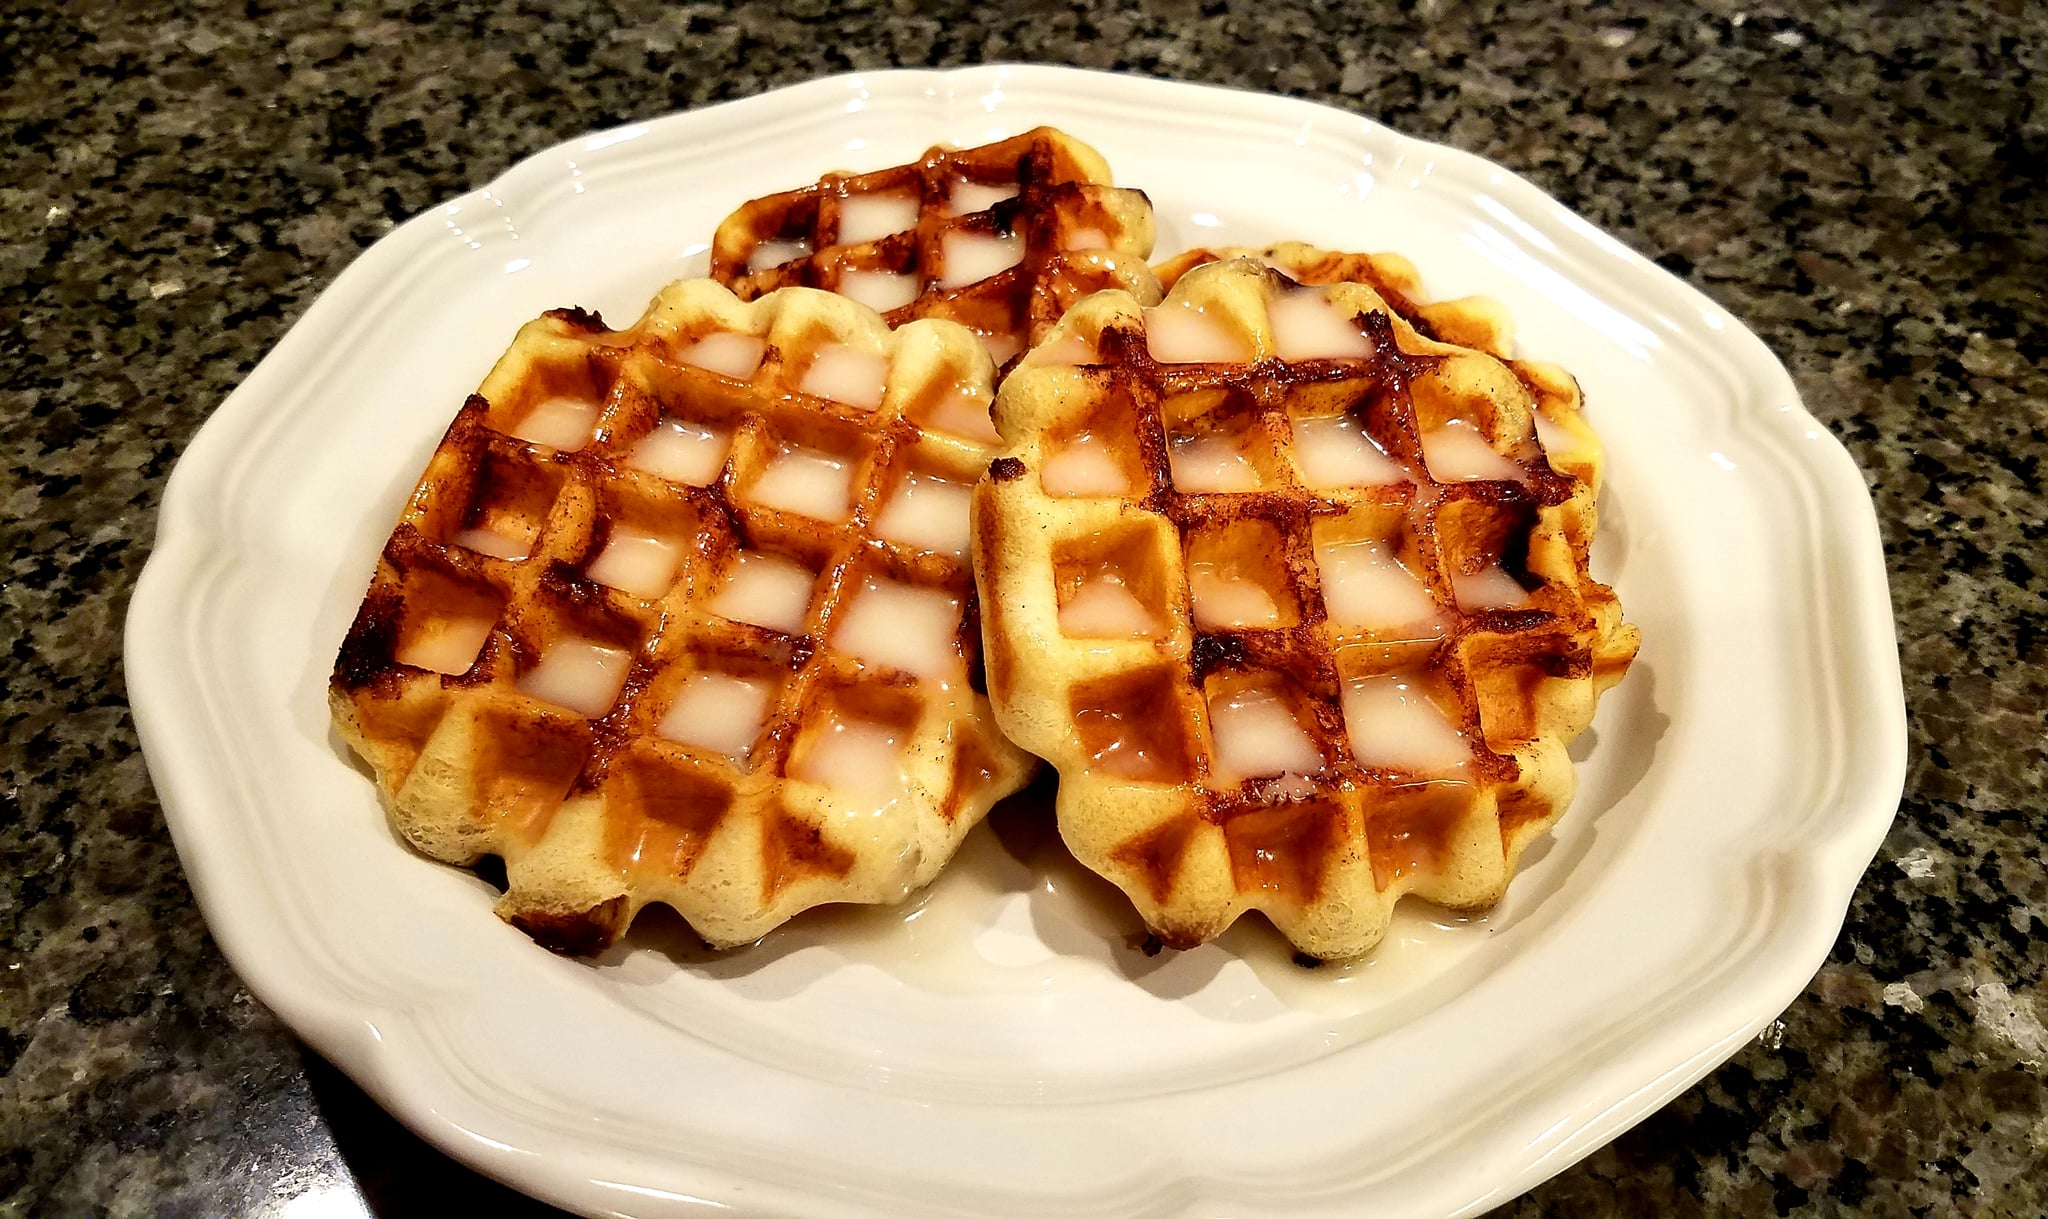 Pillsbury Grands Cinnamon Roll Waffles with Cream Cheese Glaze